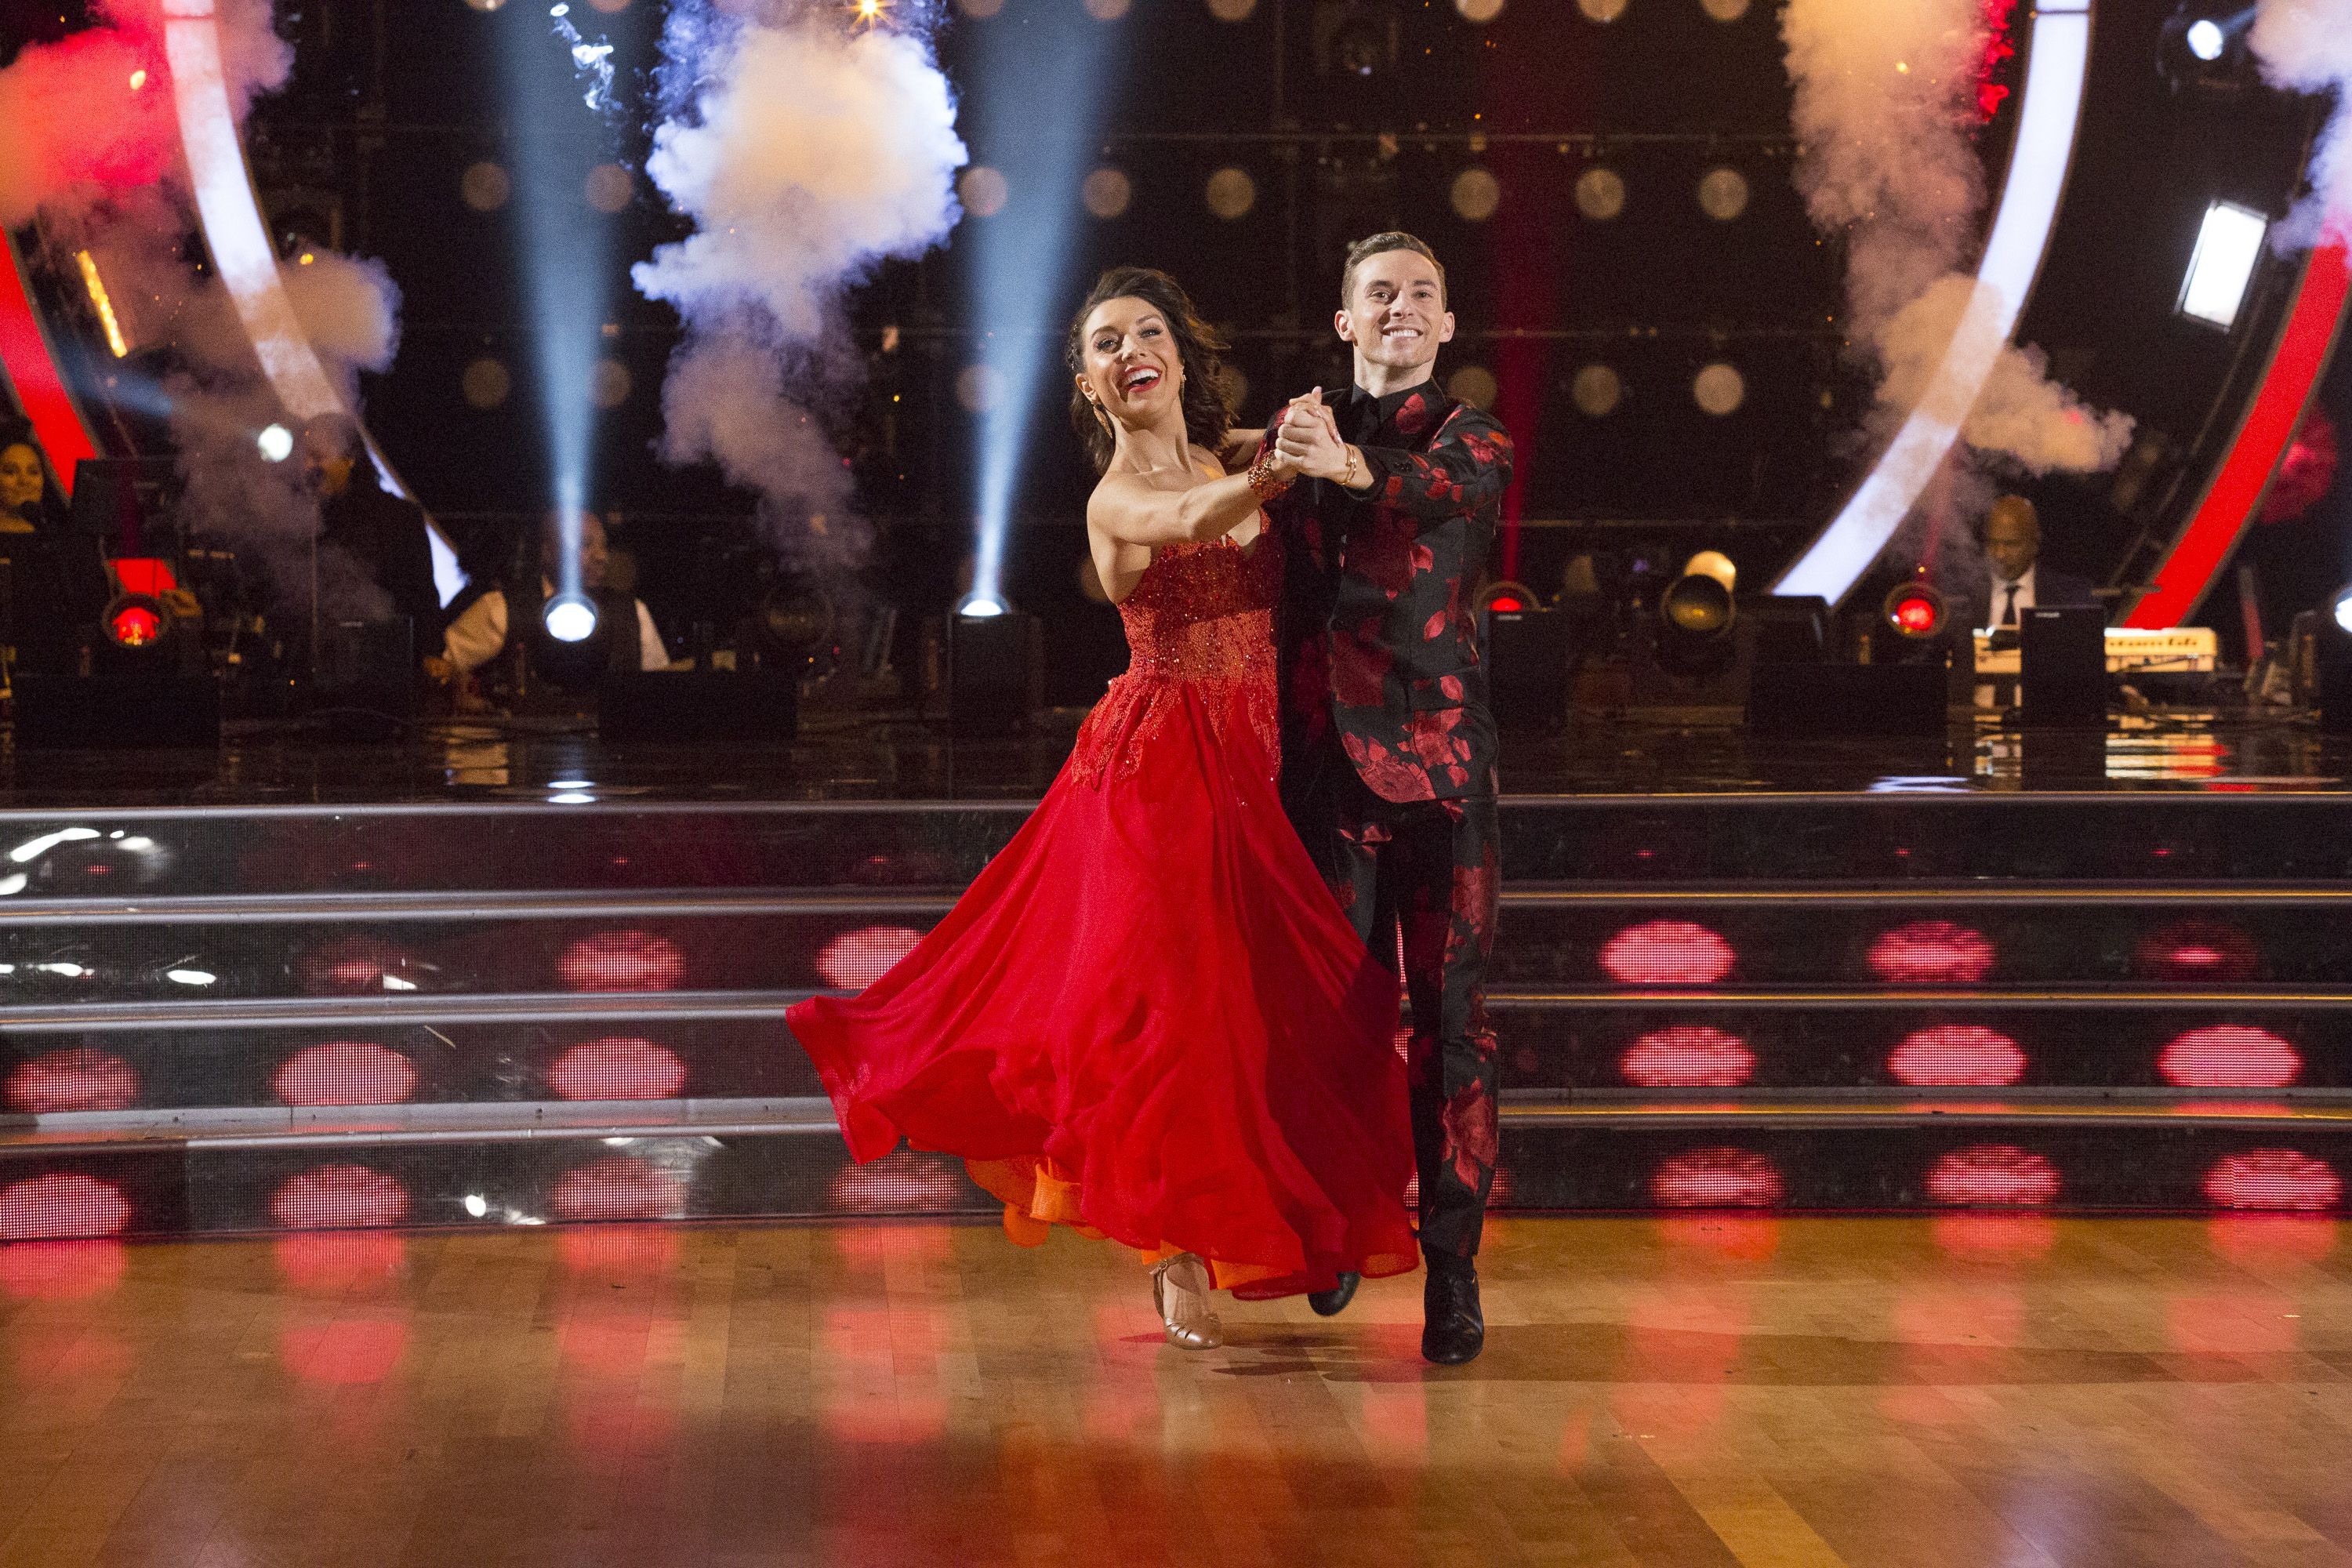 Dancing with the stars hook up rumors 2018